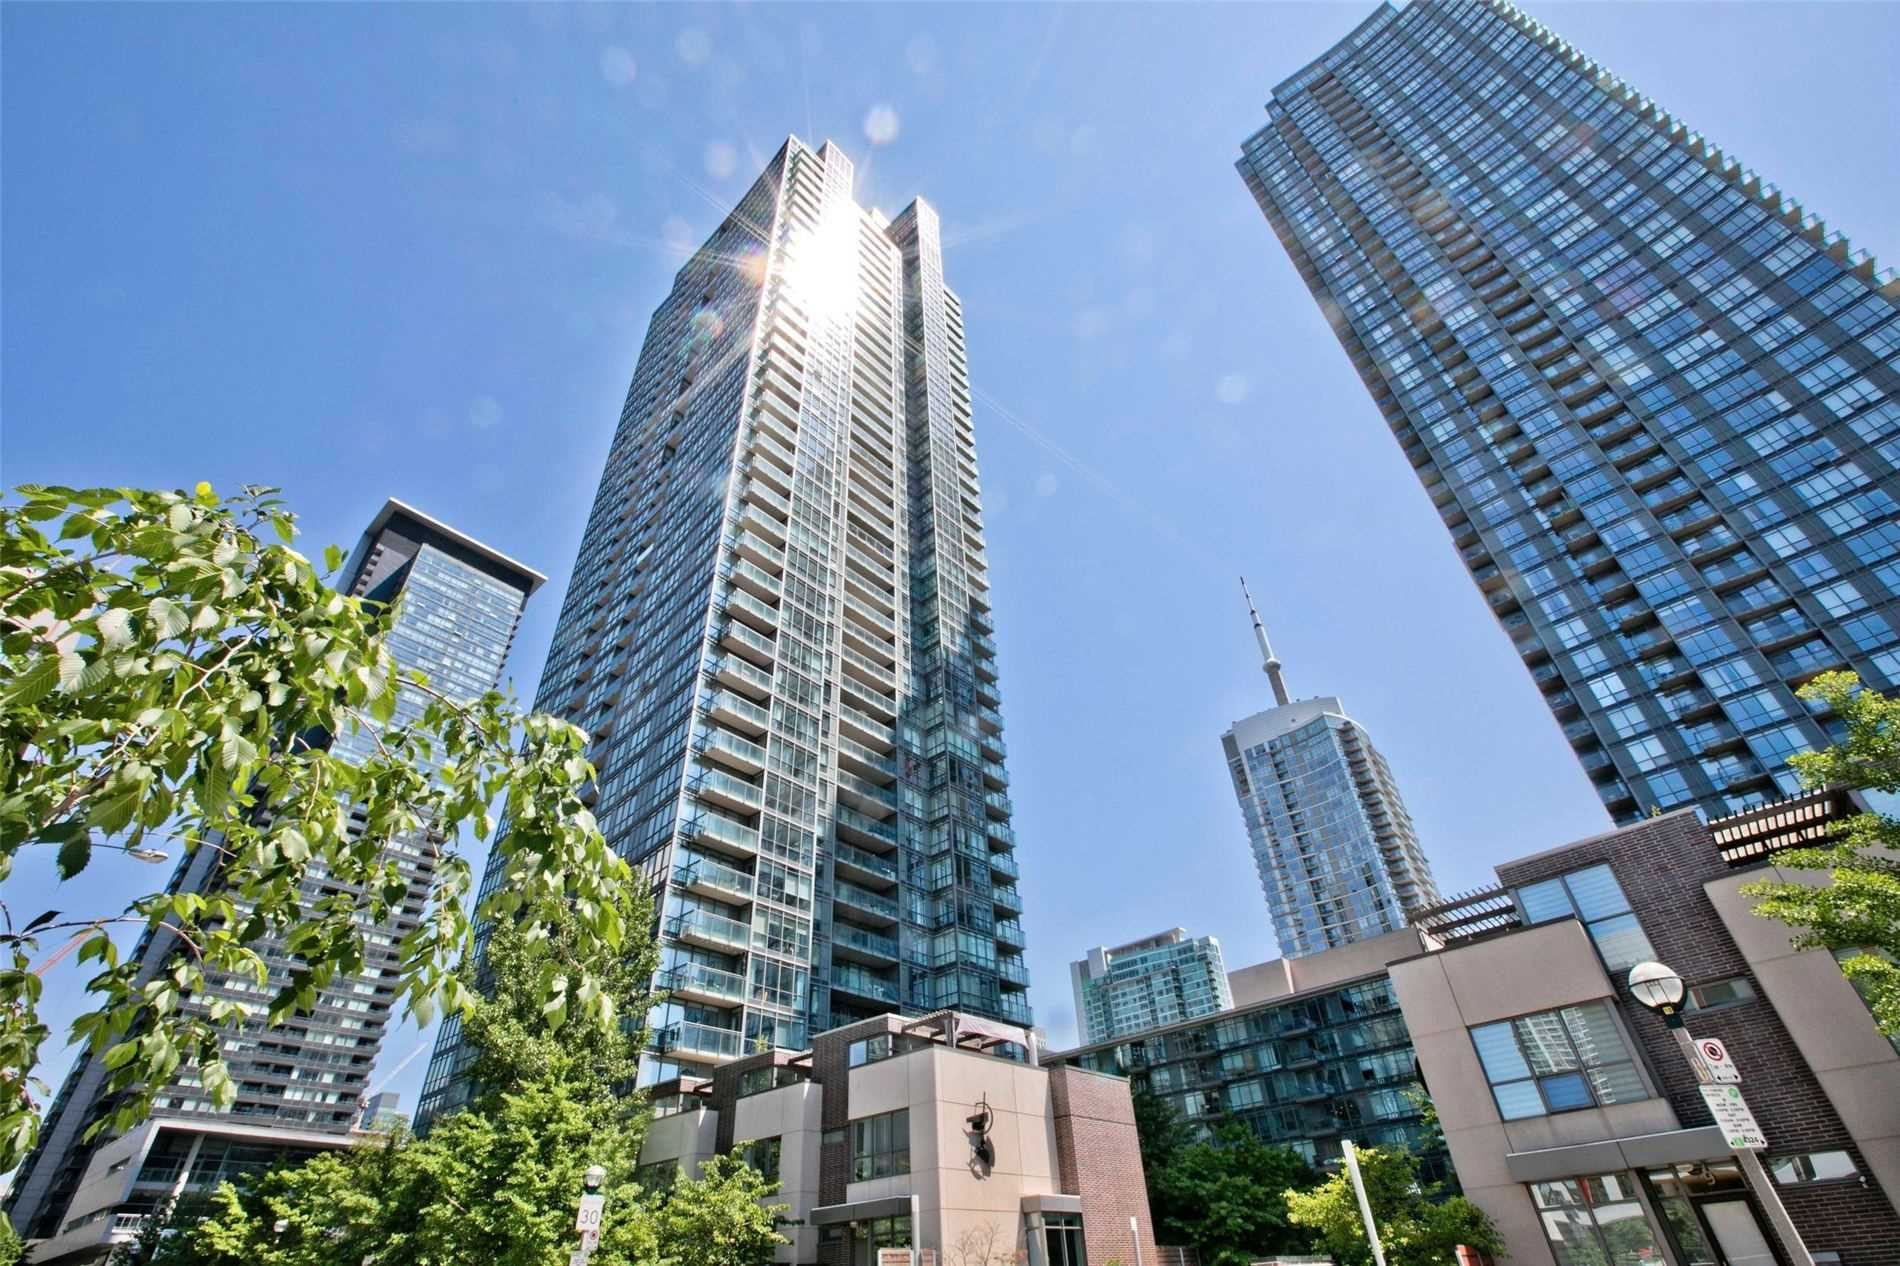 House For Sale Unit #515, 15 Fort York Blvd, M5V3Y4, Waterfront Communities C1, Toronto